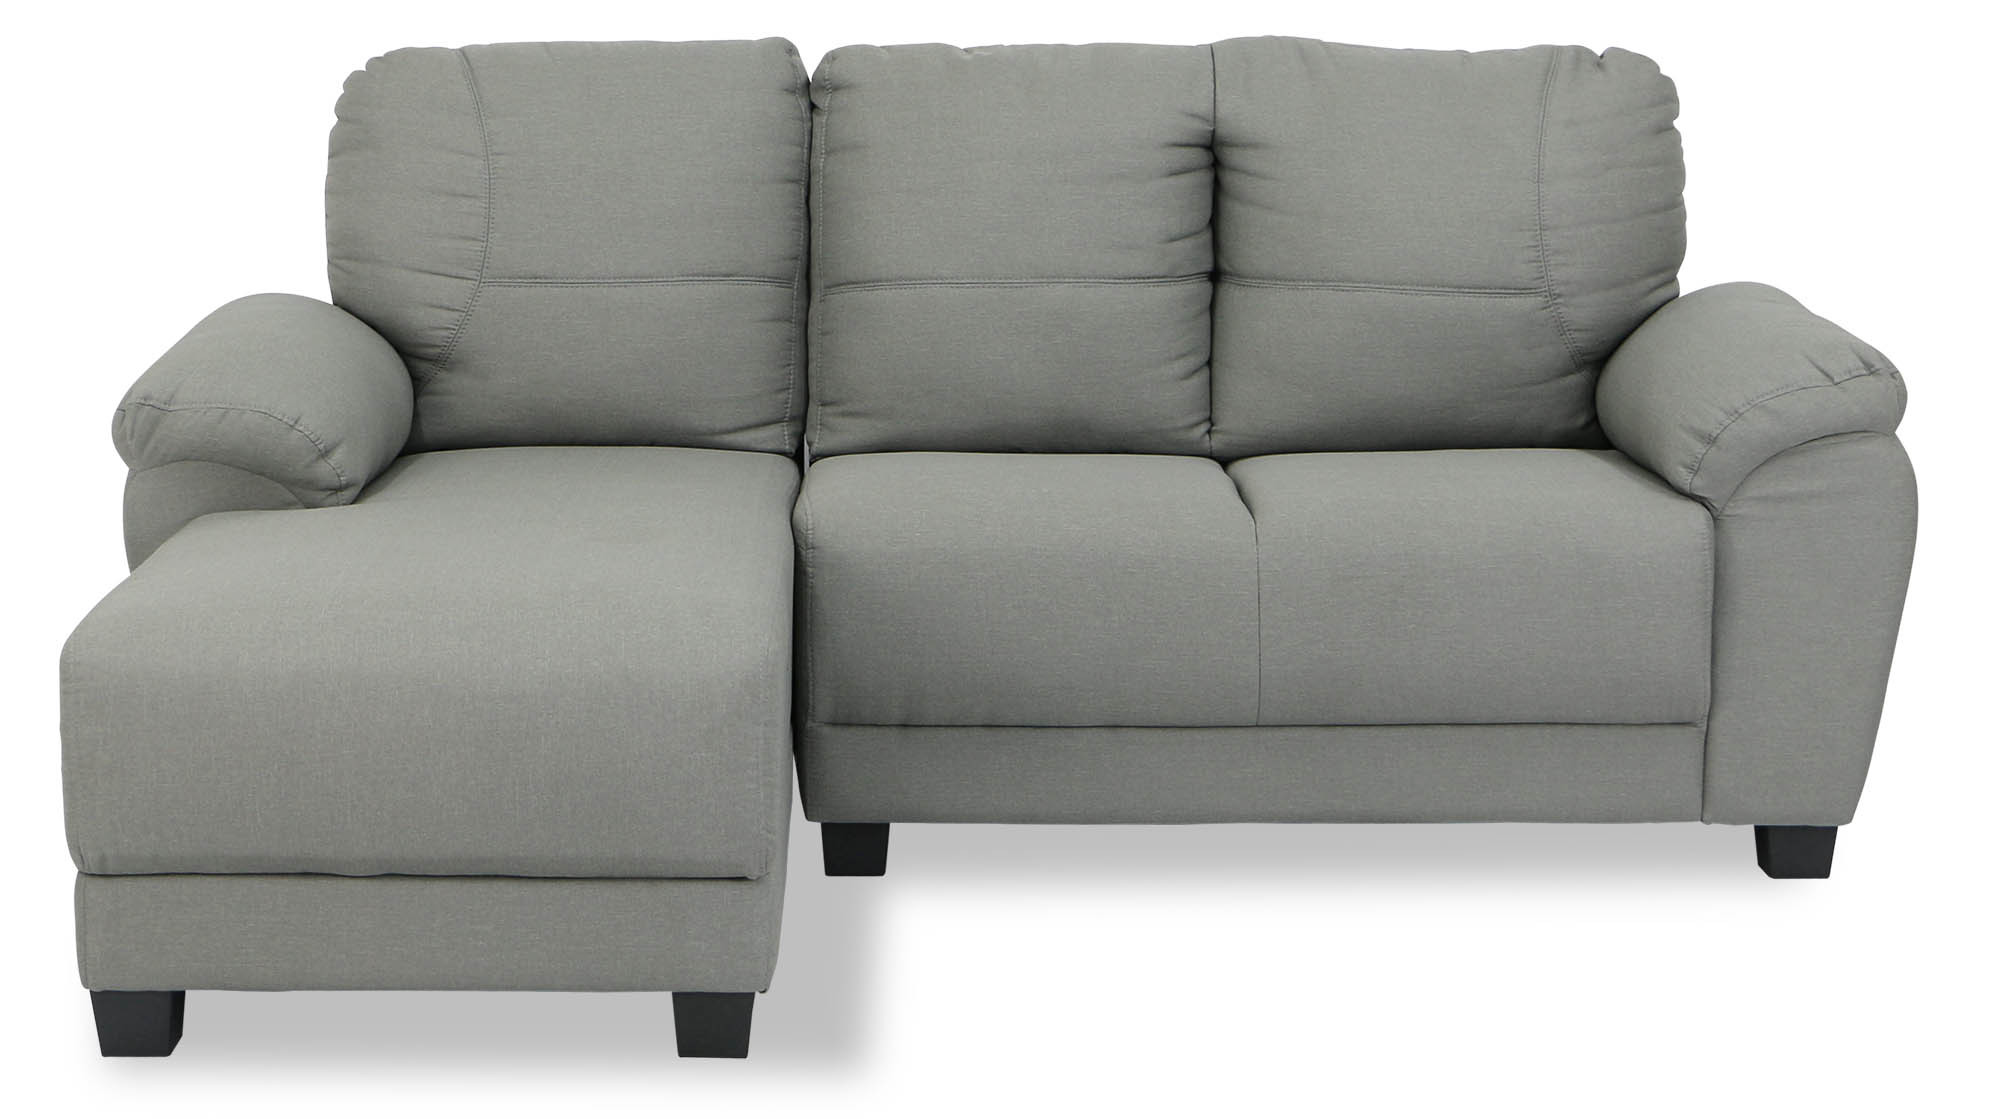 Abner Fabric L Shaped Sofa